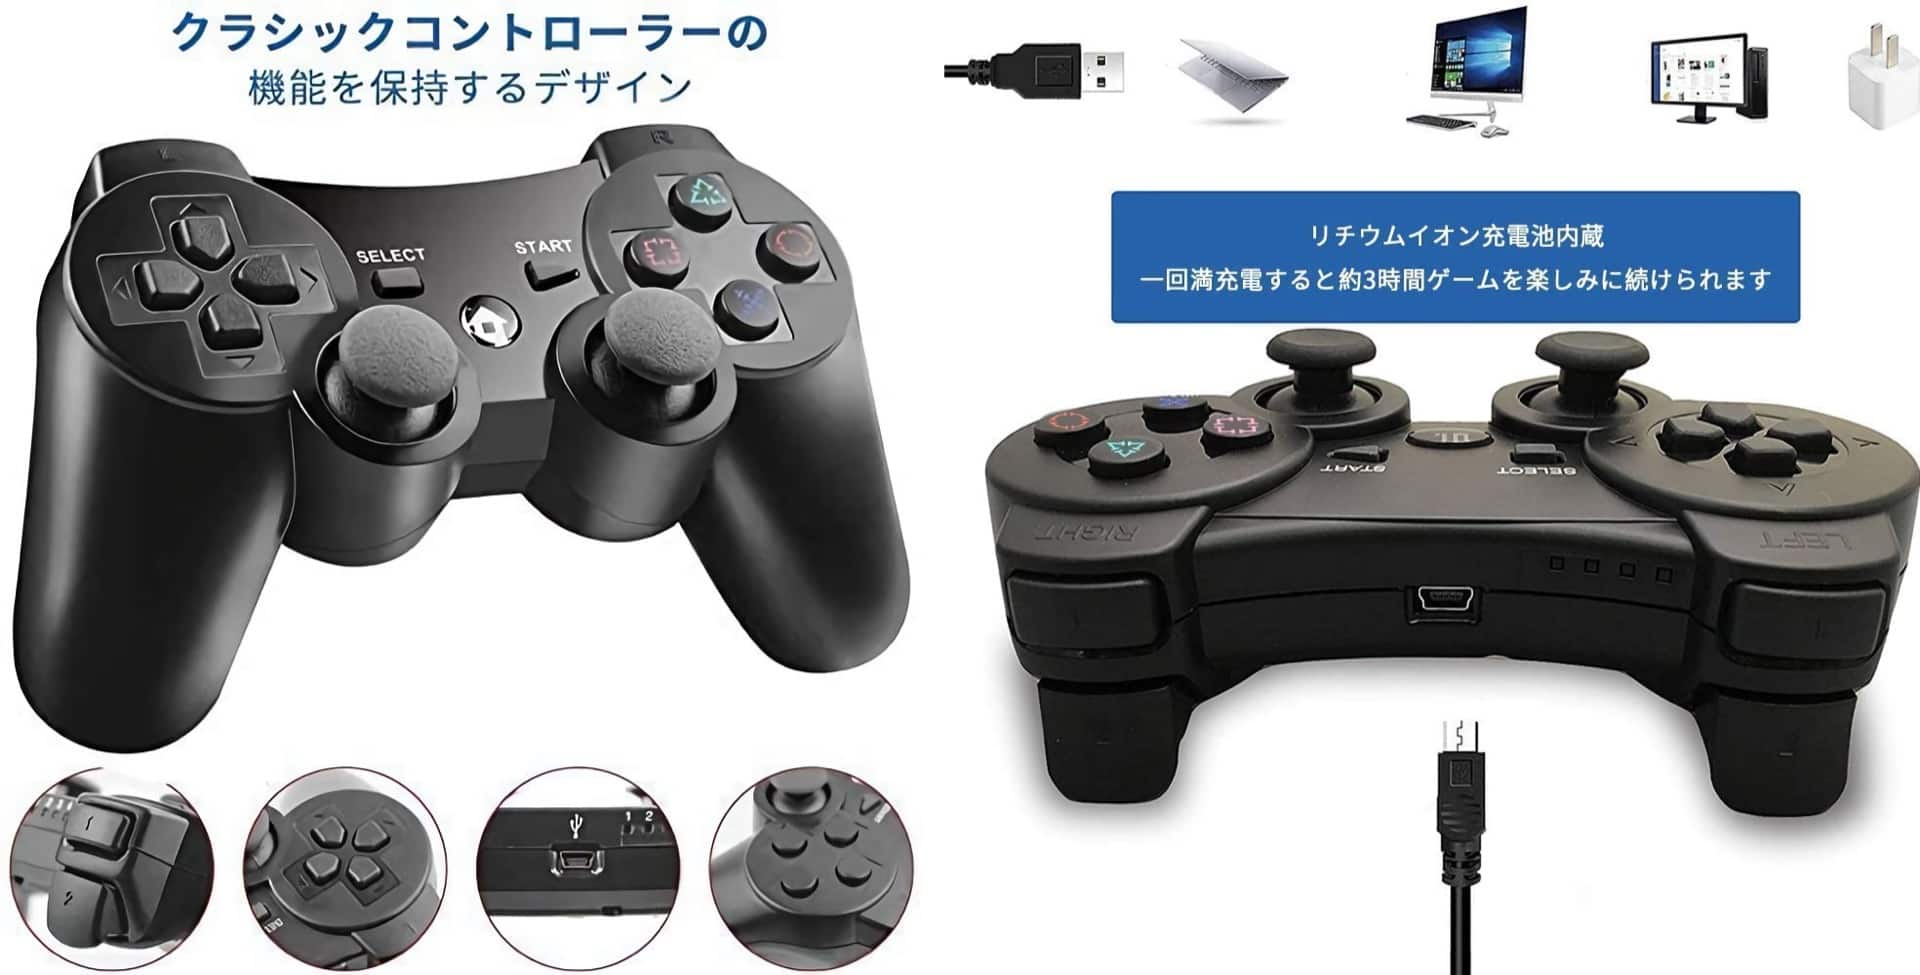 MINGYI ワイヤレスコントローラー for PS3